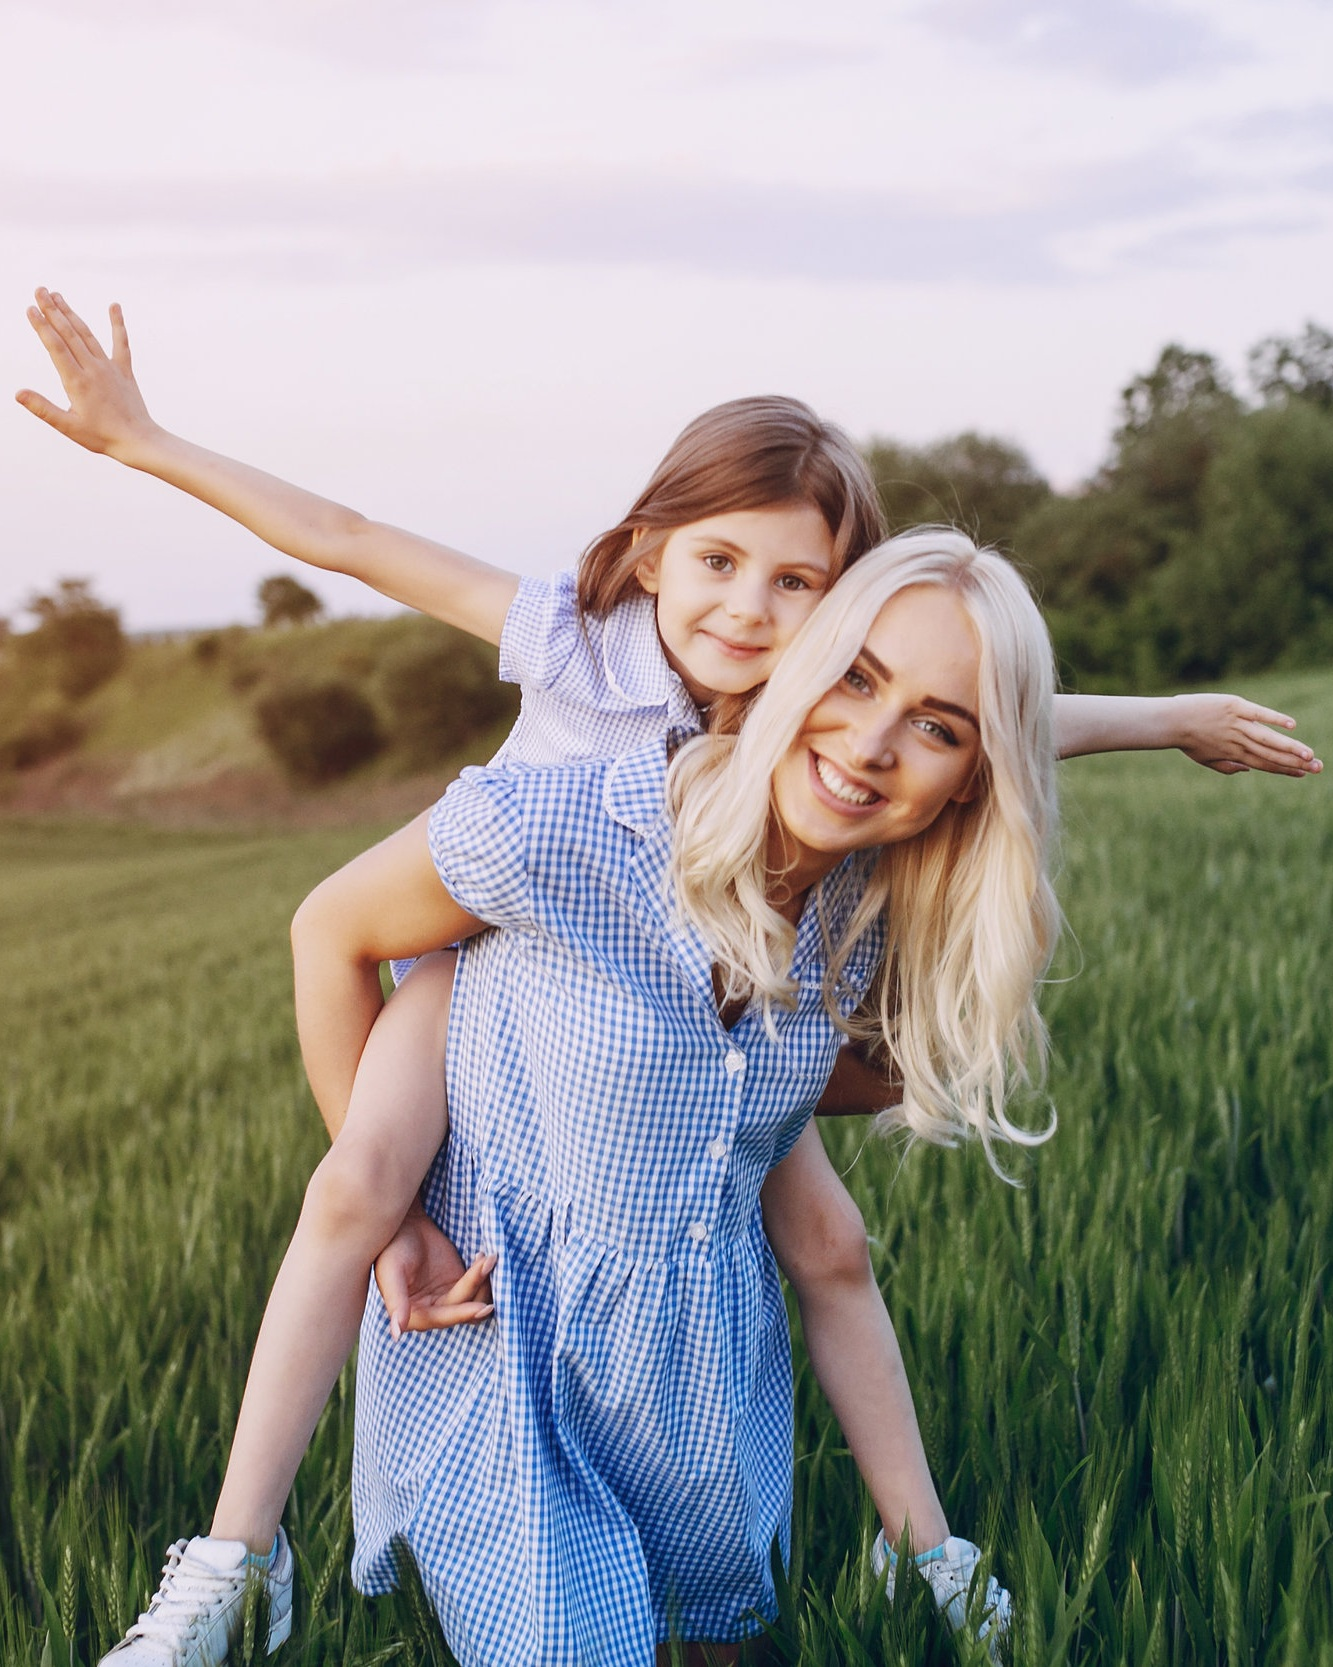 Mother and daughter playing outdoors.